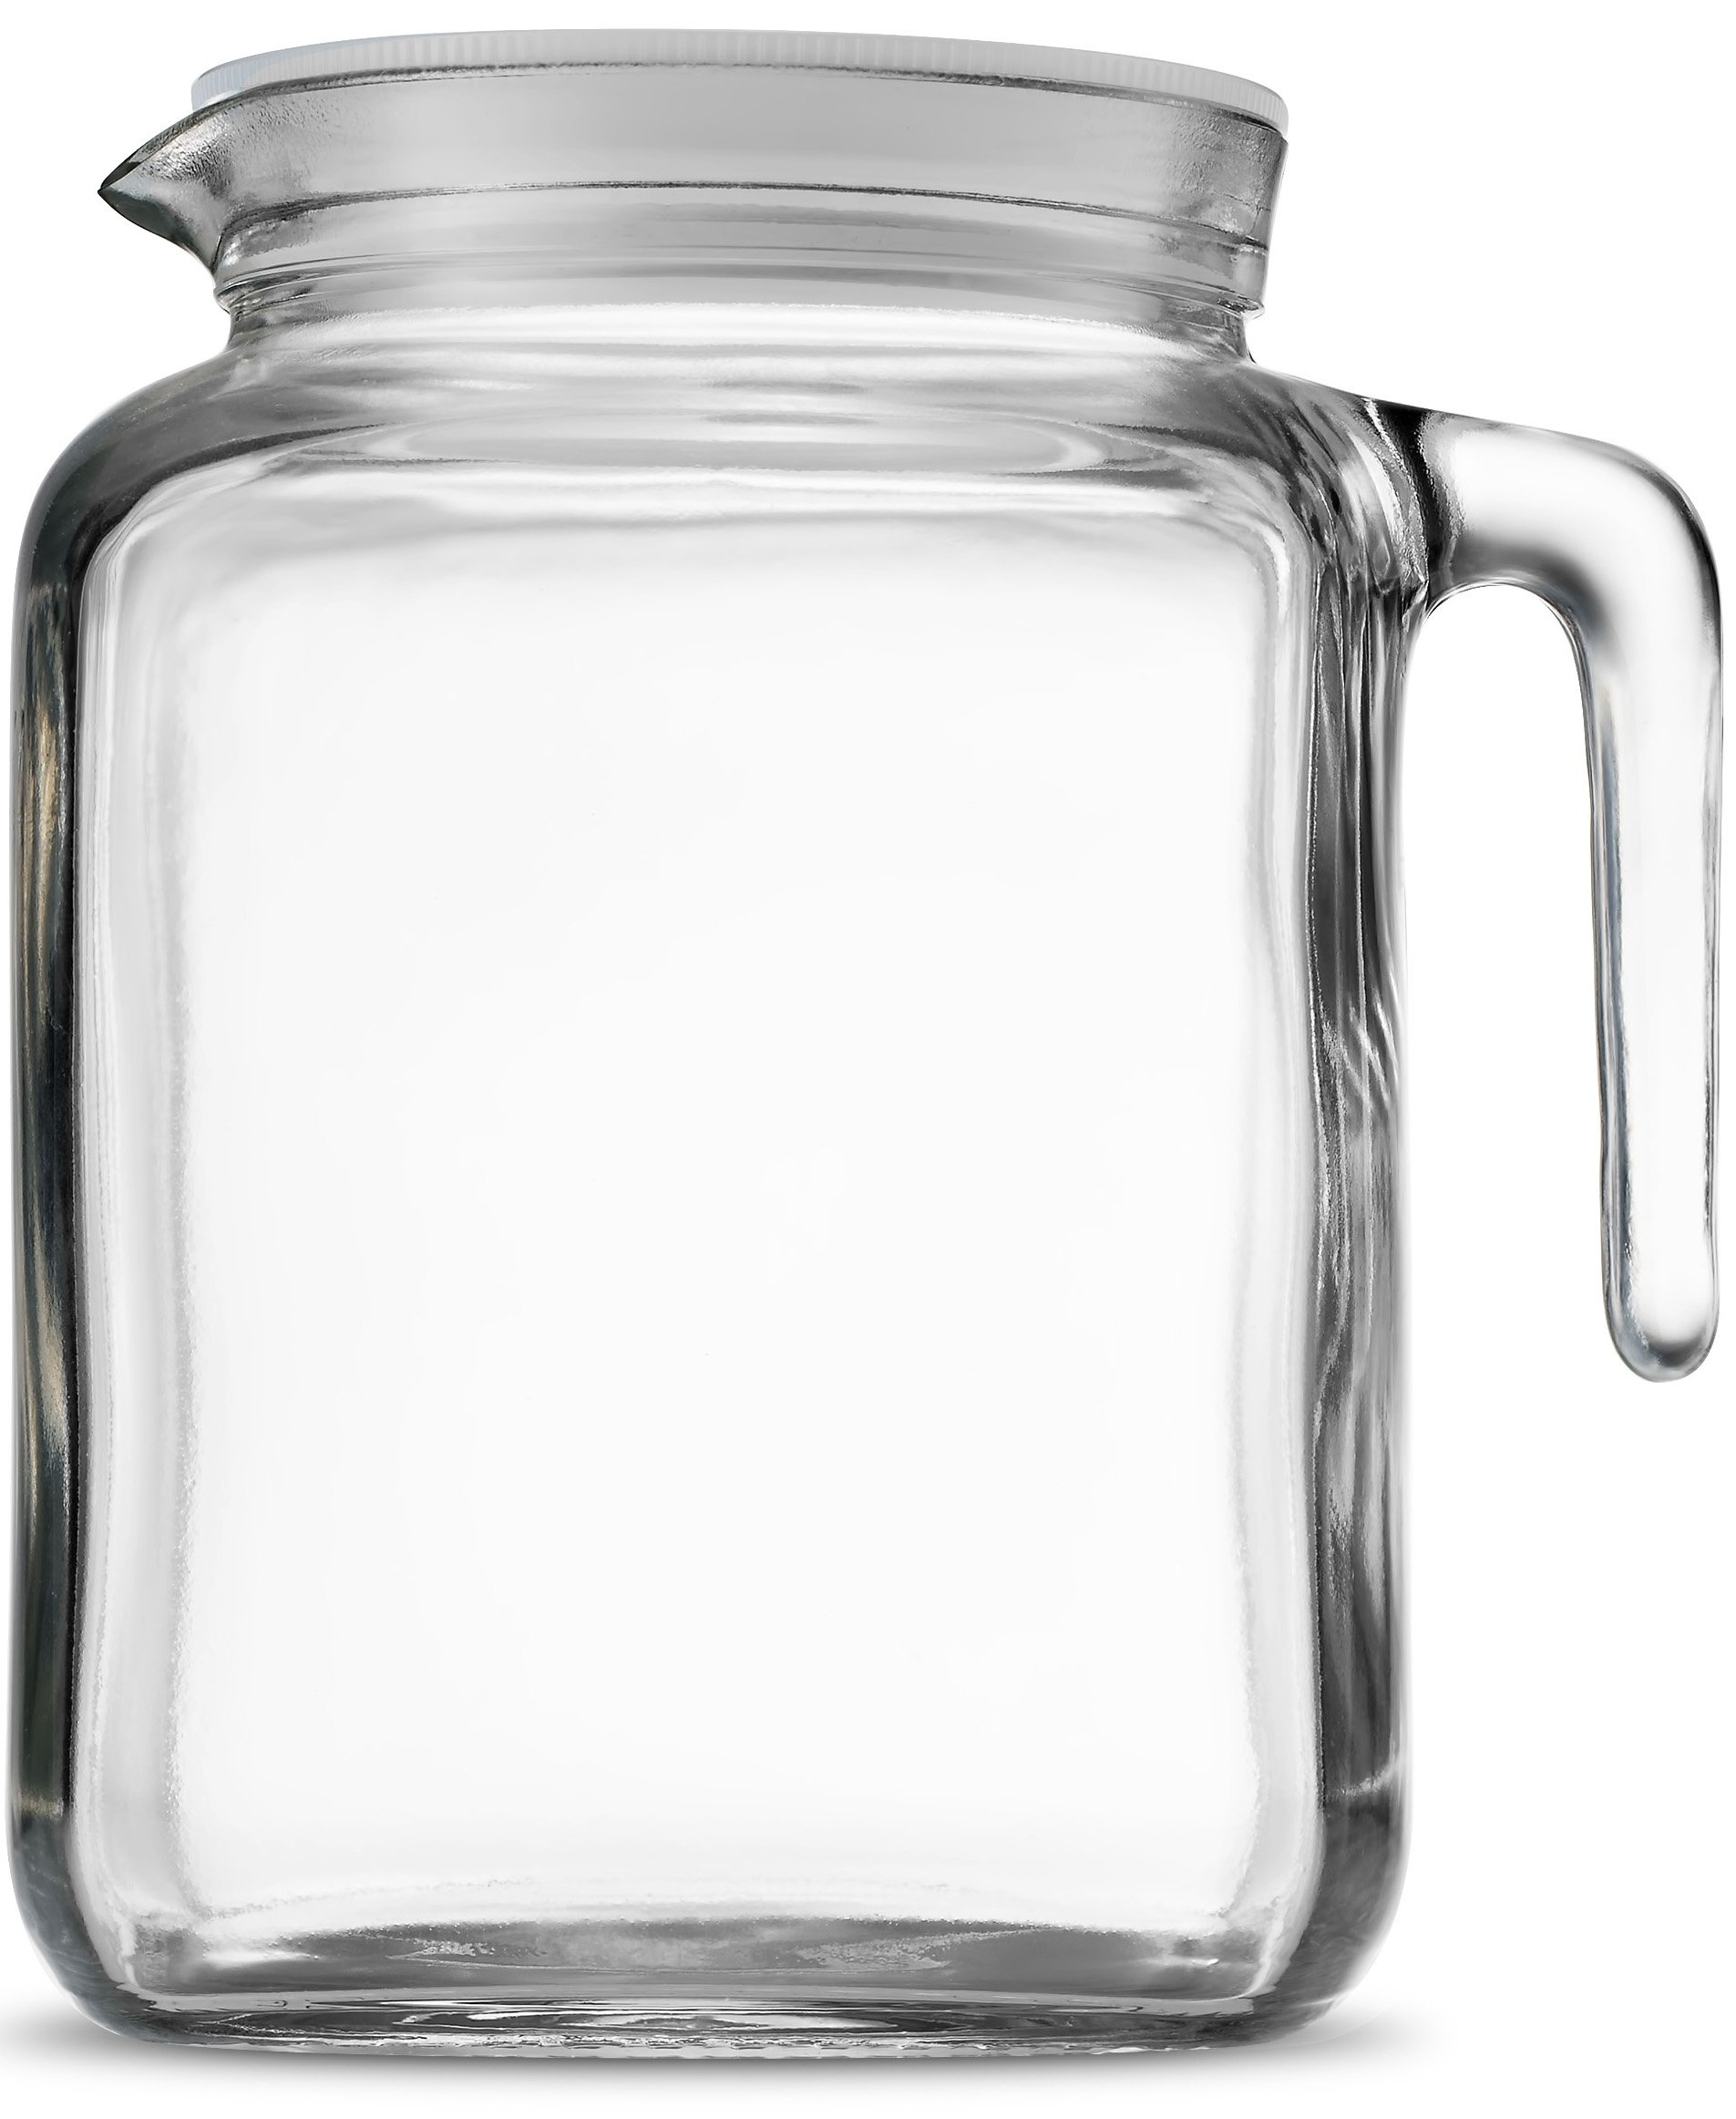 Bormioli Rocco Hermetic Seal Glass Pitcher With Lid and Spout [68 Ounce] Great for Homemade Juice & Iced Tea or for Glass Milk Bottles by Bormioli Rocco